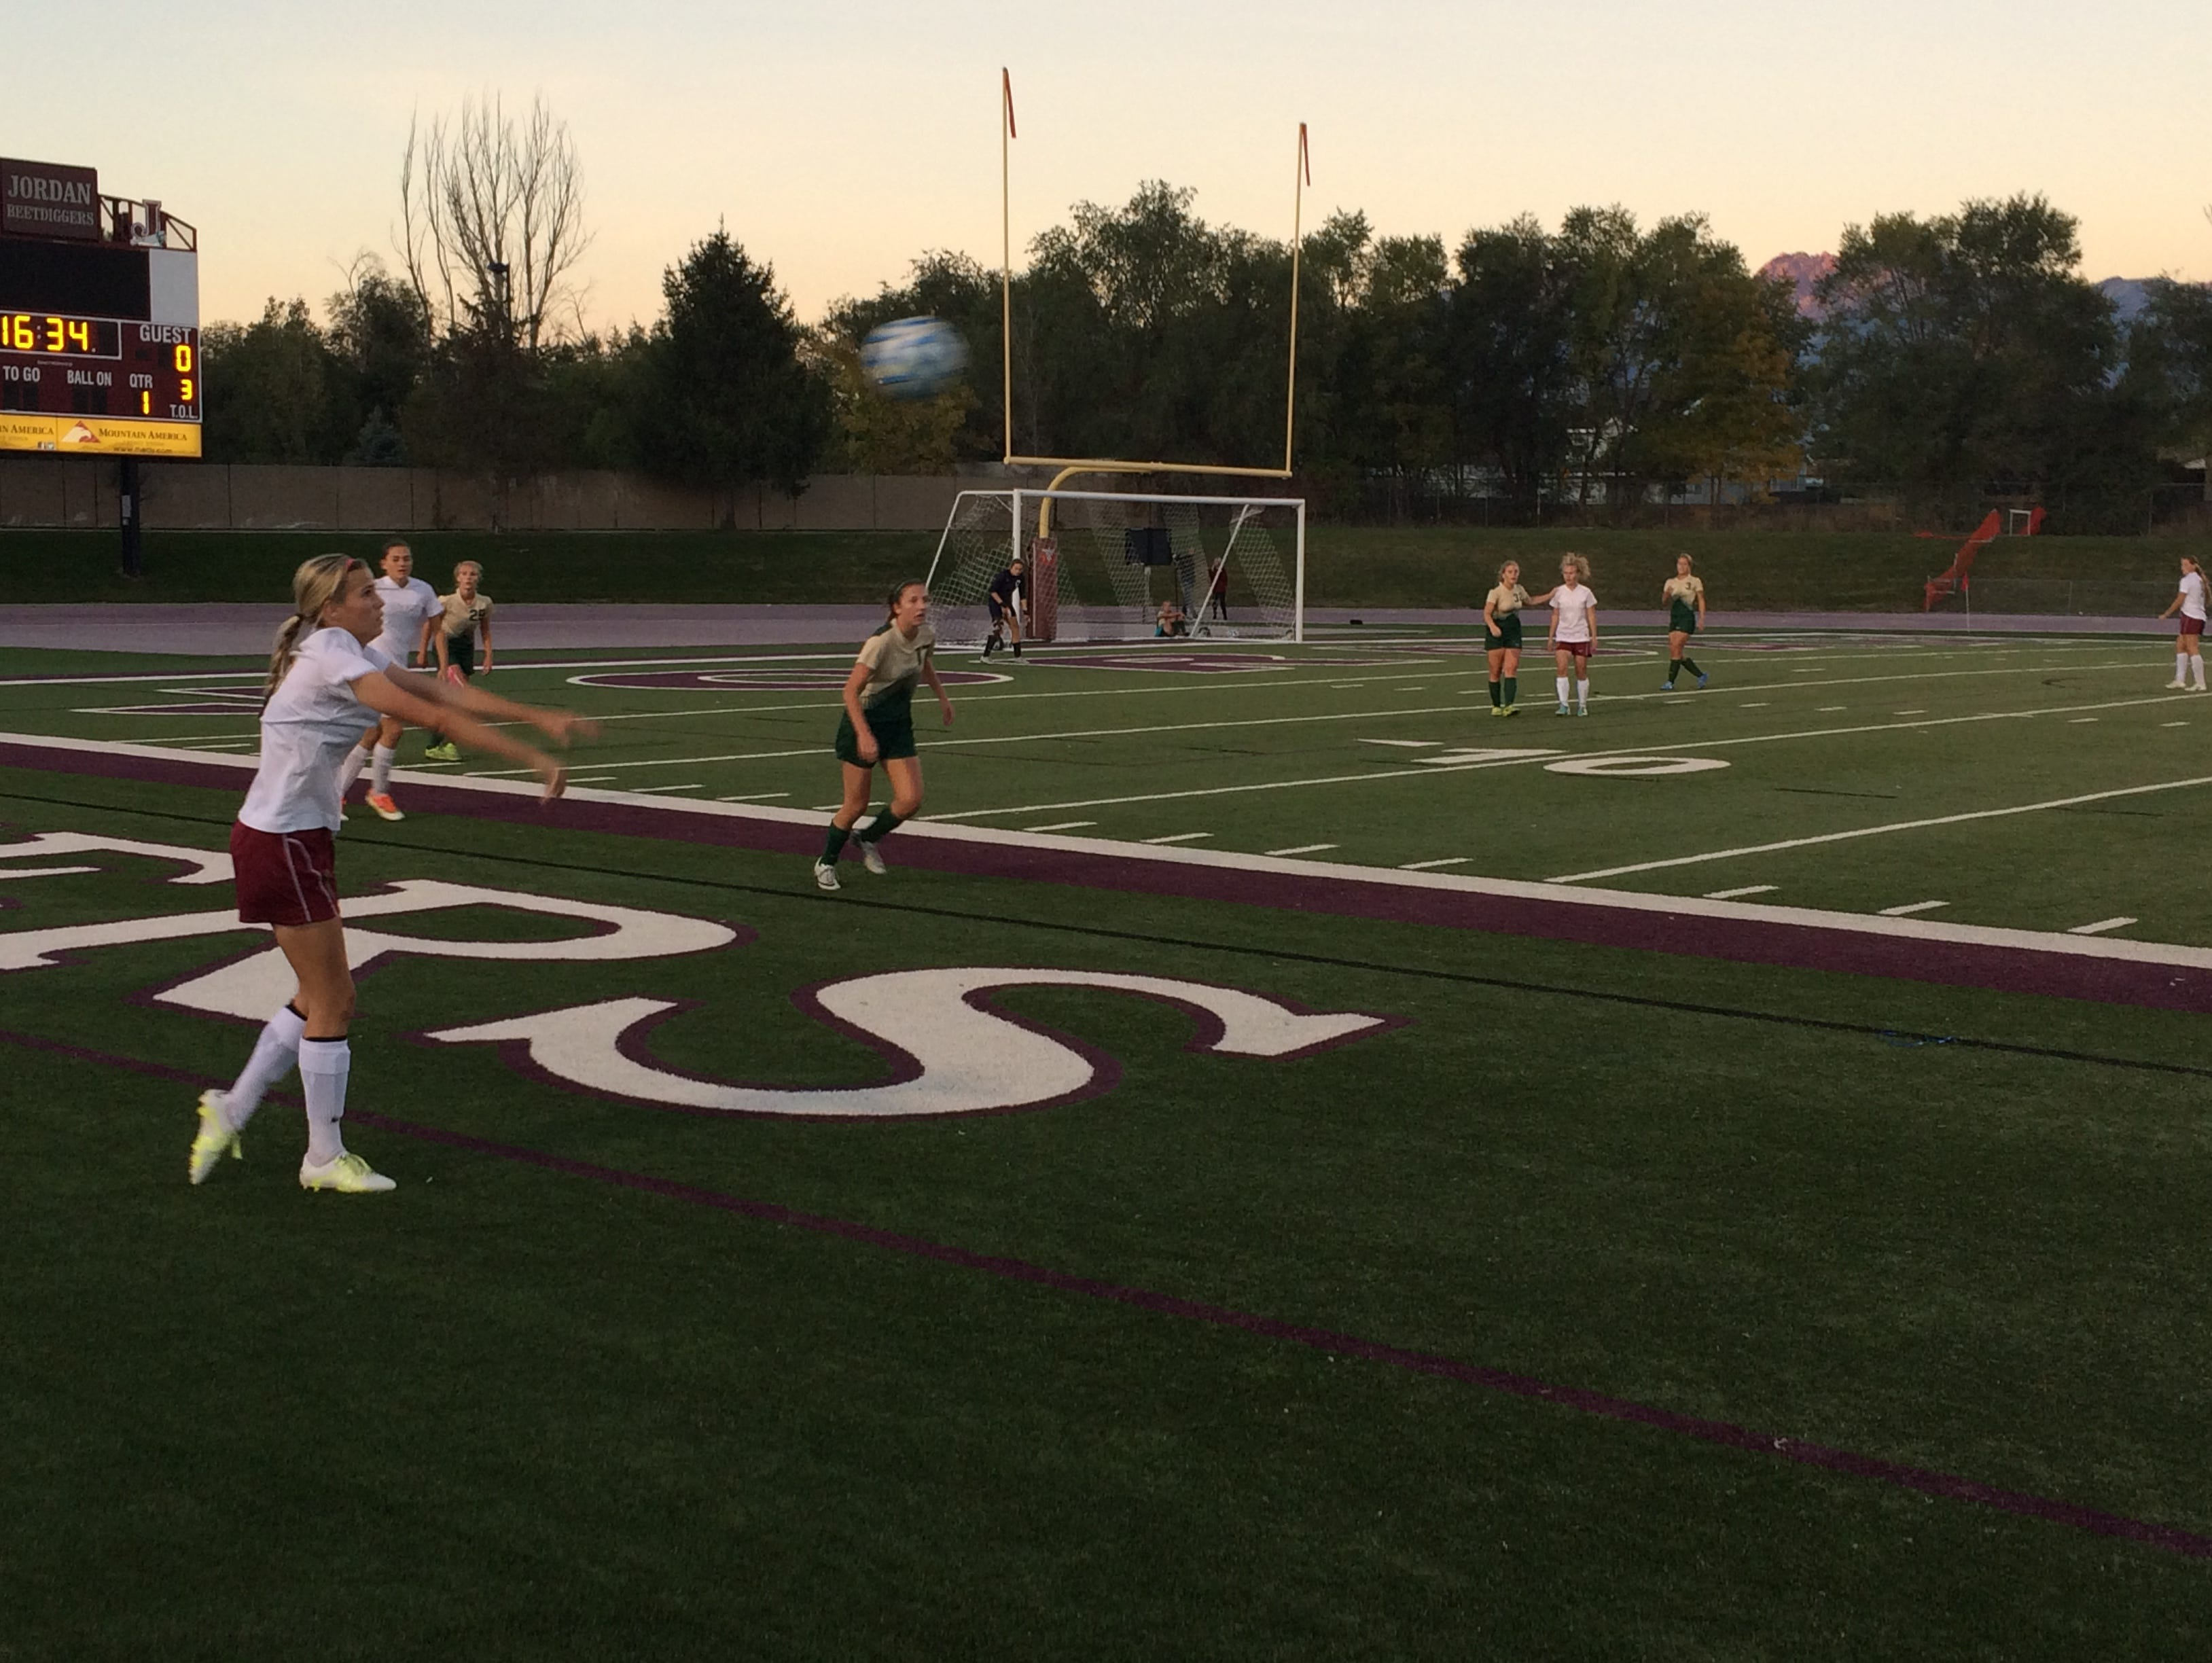 Cedar defeated Snow Canyon 1-0 during the 3A semifinals at Jordan High School on Friday. The Lady Reds will take on Logan at Rio Tinto Stadium on Saturday for the 3A crown.